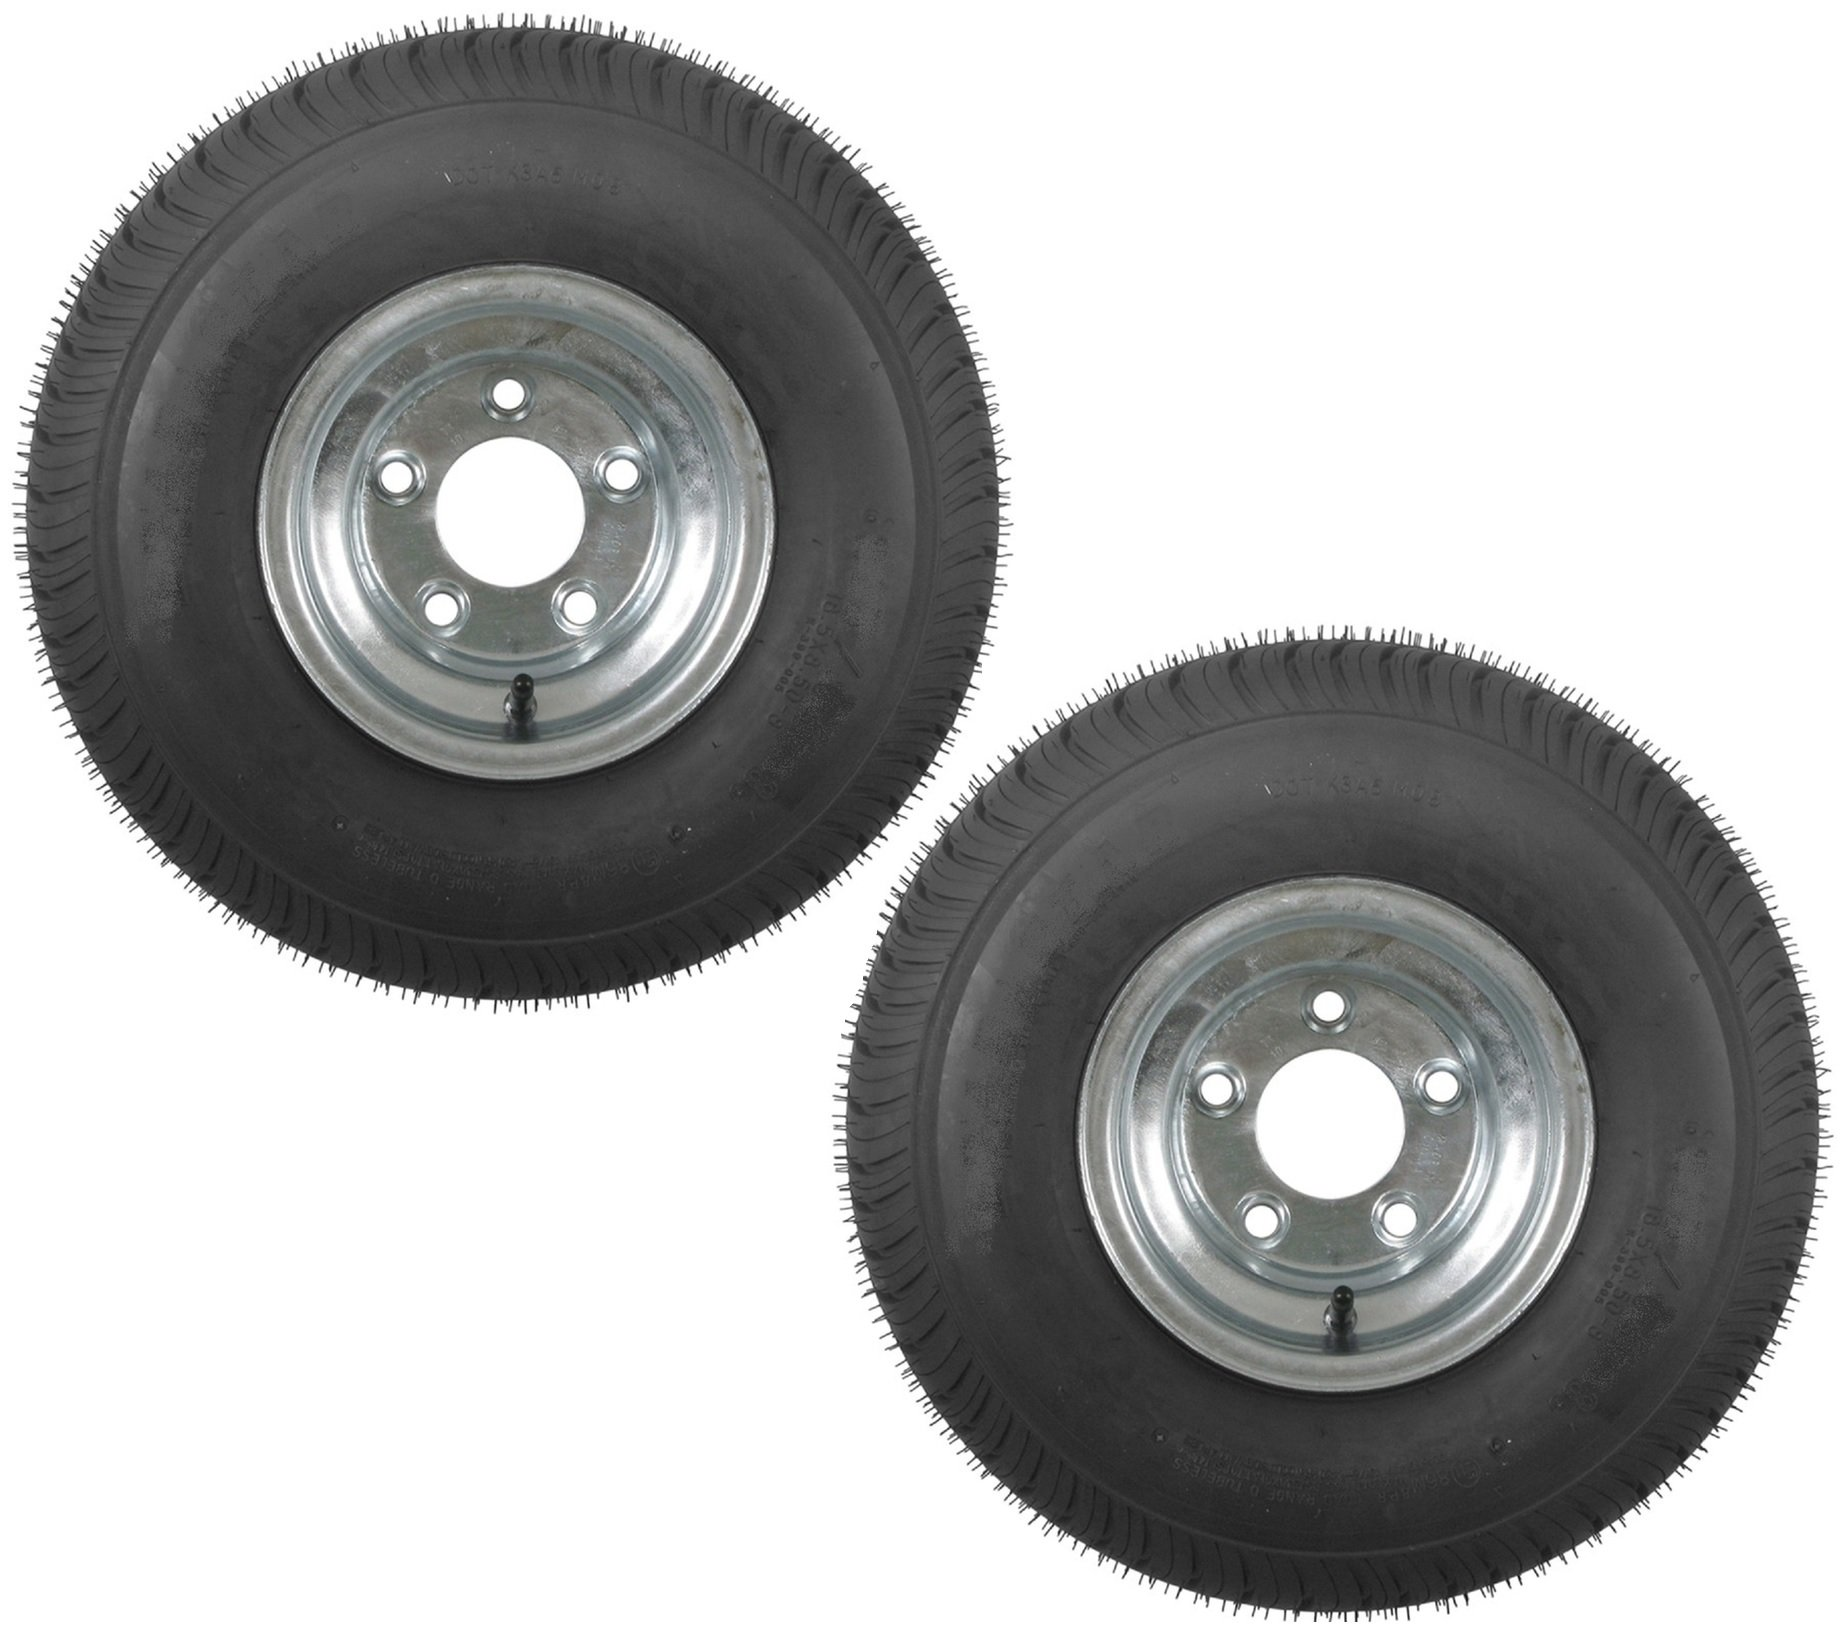 2-Pack Trailer Tires On Galvanized Rims 18.5x8.5-8 18.5 x 8.5-8 Load B 5 Lug